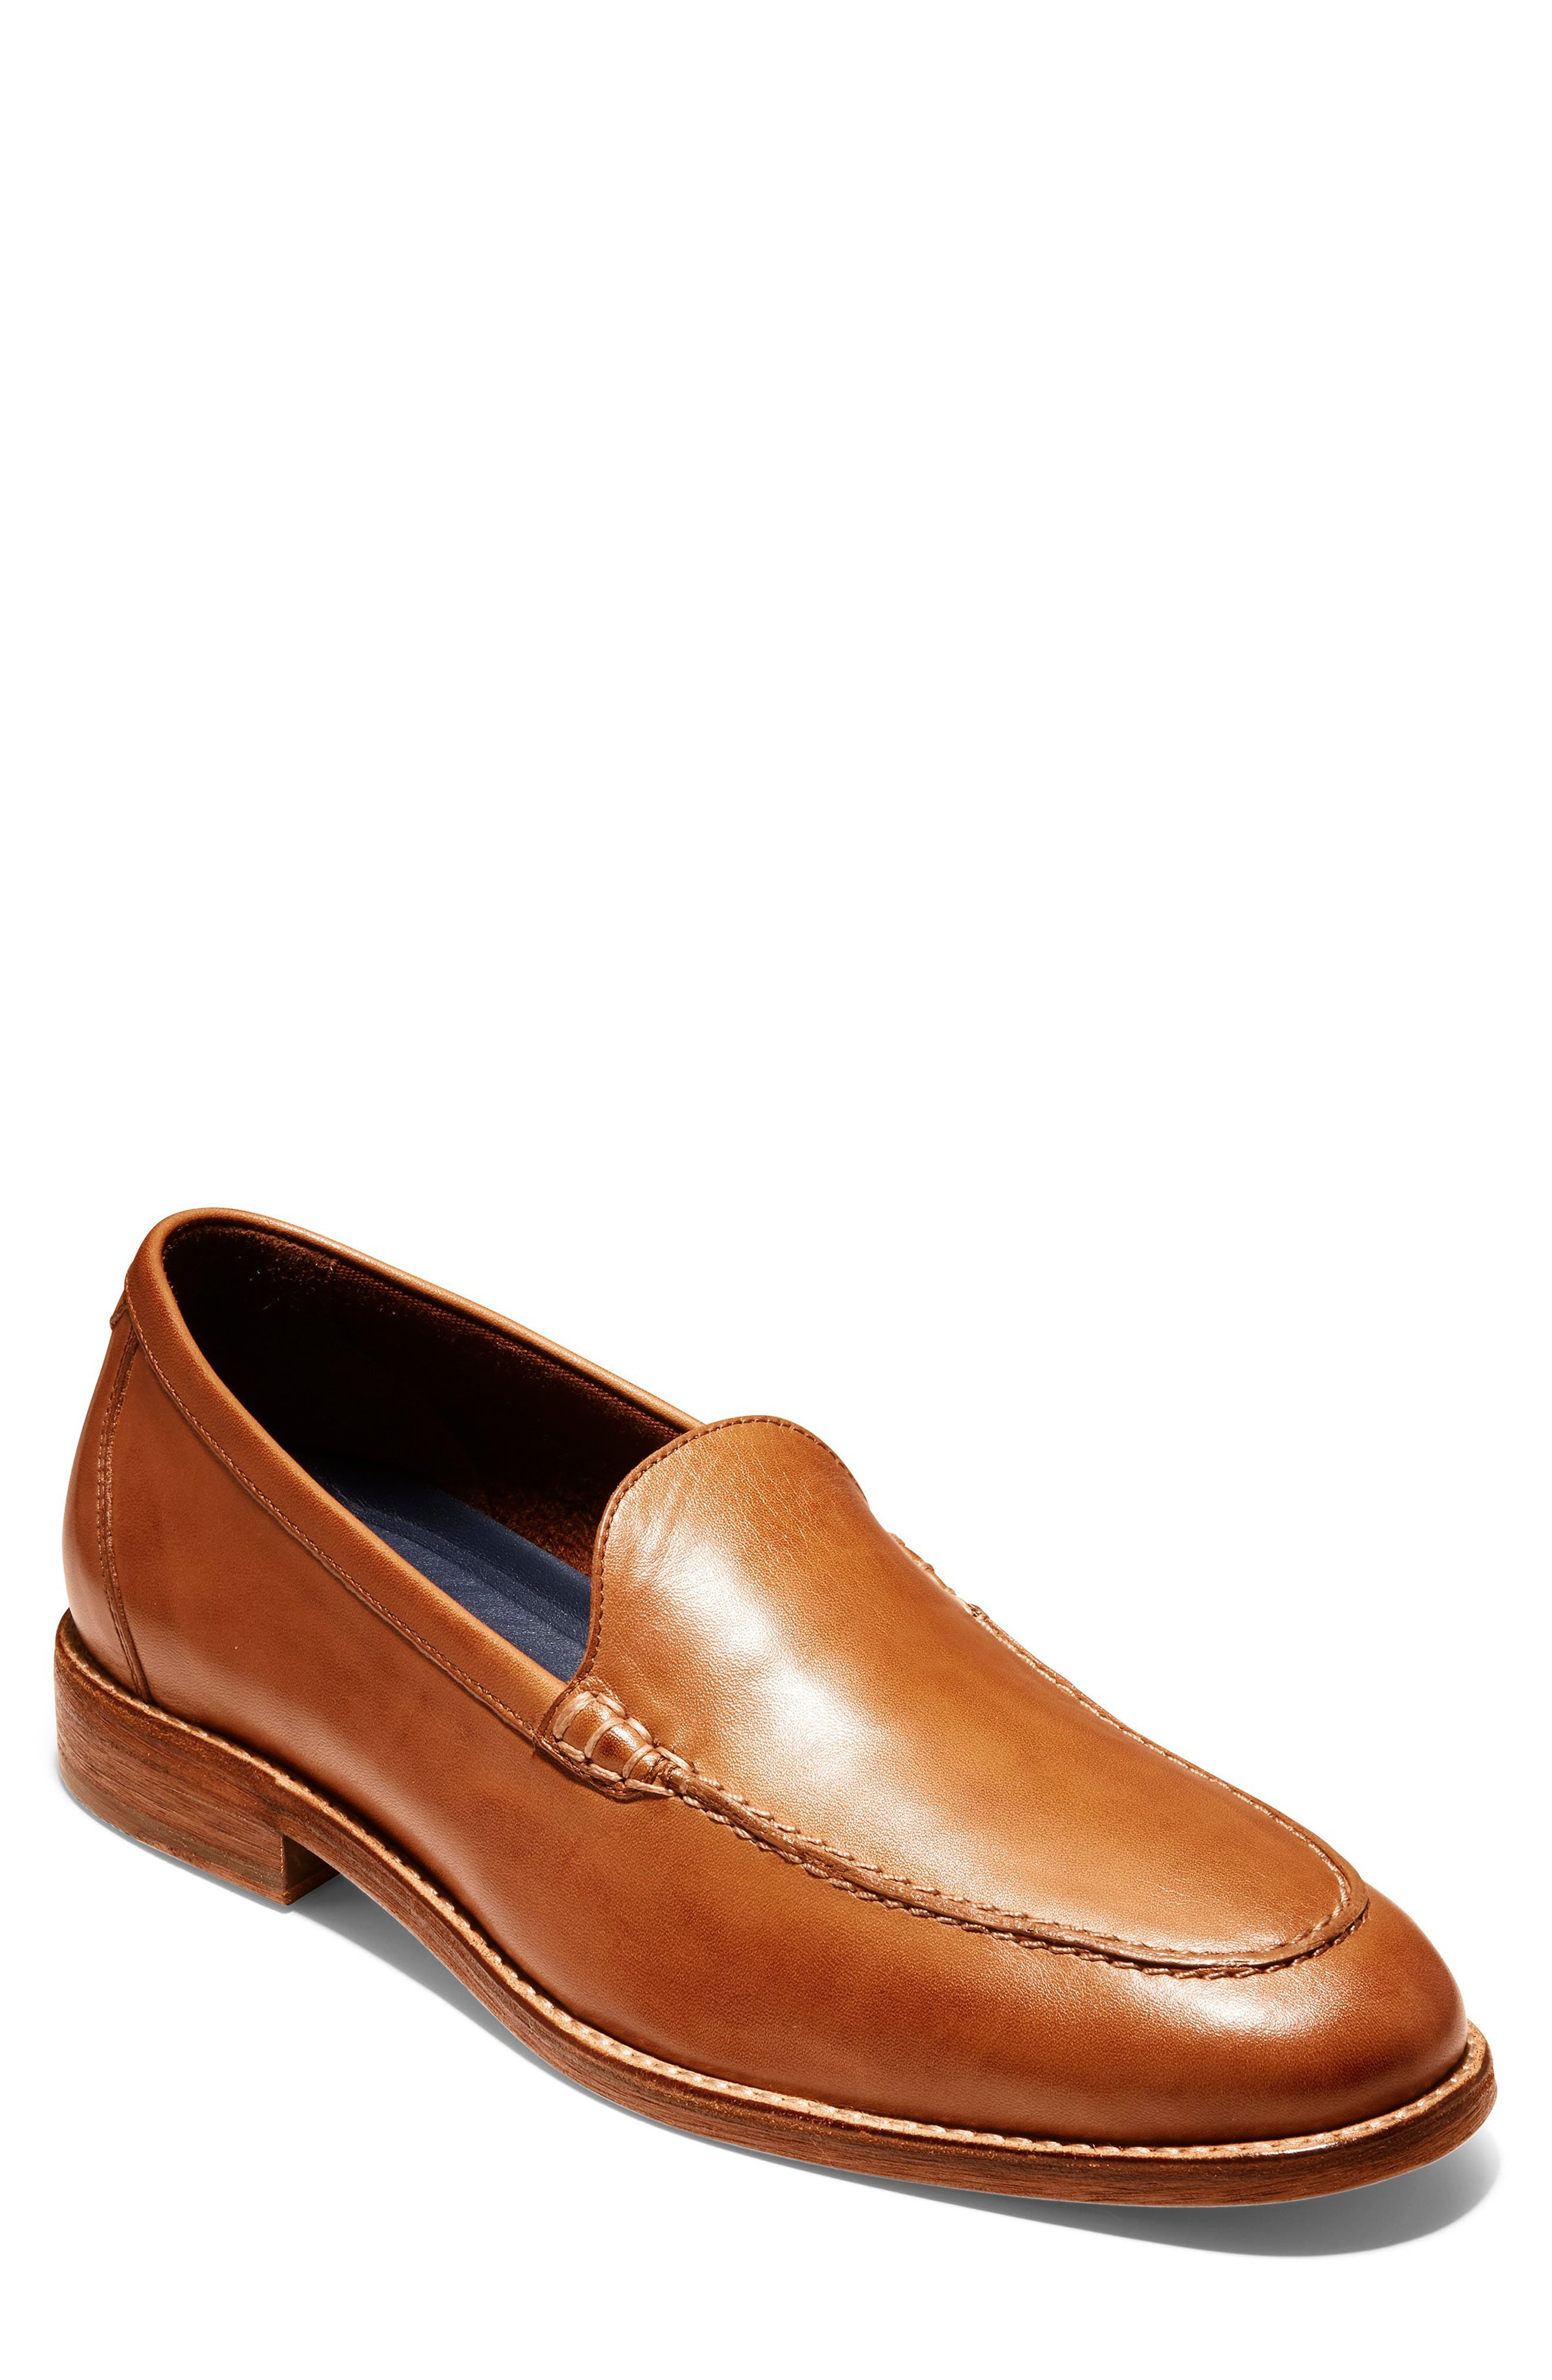 Cole Haan Feathercraft Grand Venetian Loafer- Brown